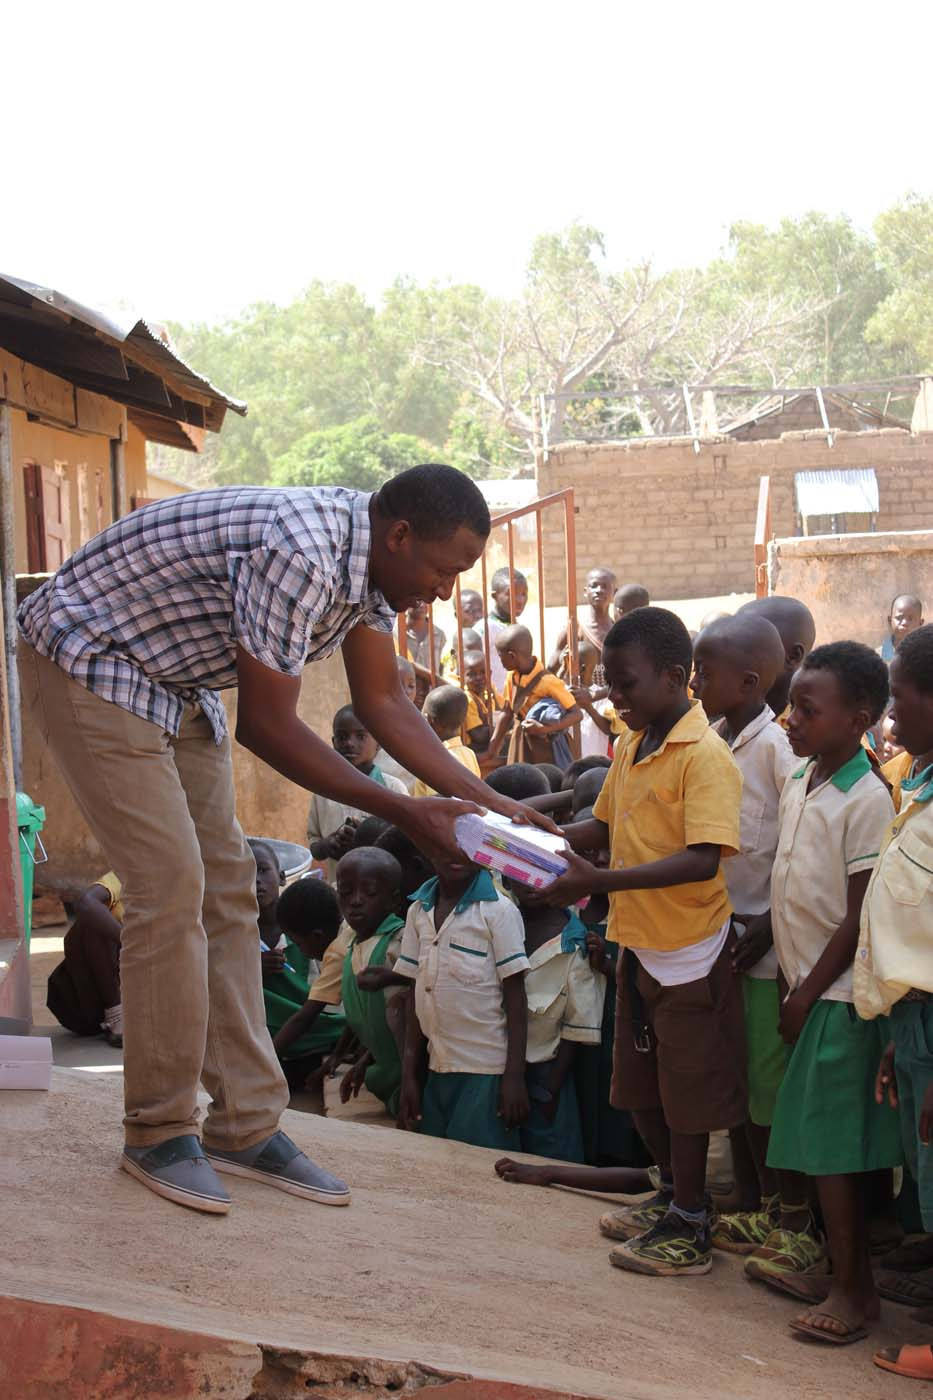 Our longtime partner, Paul, handing out supplies